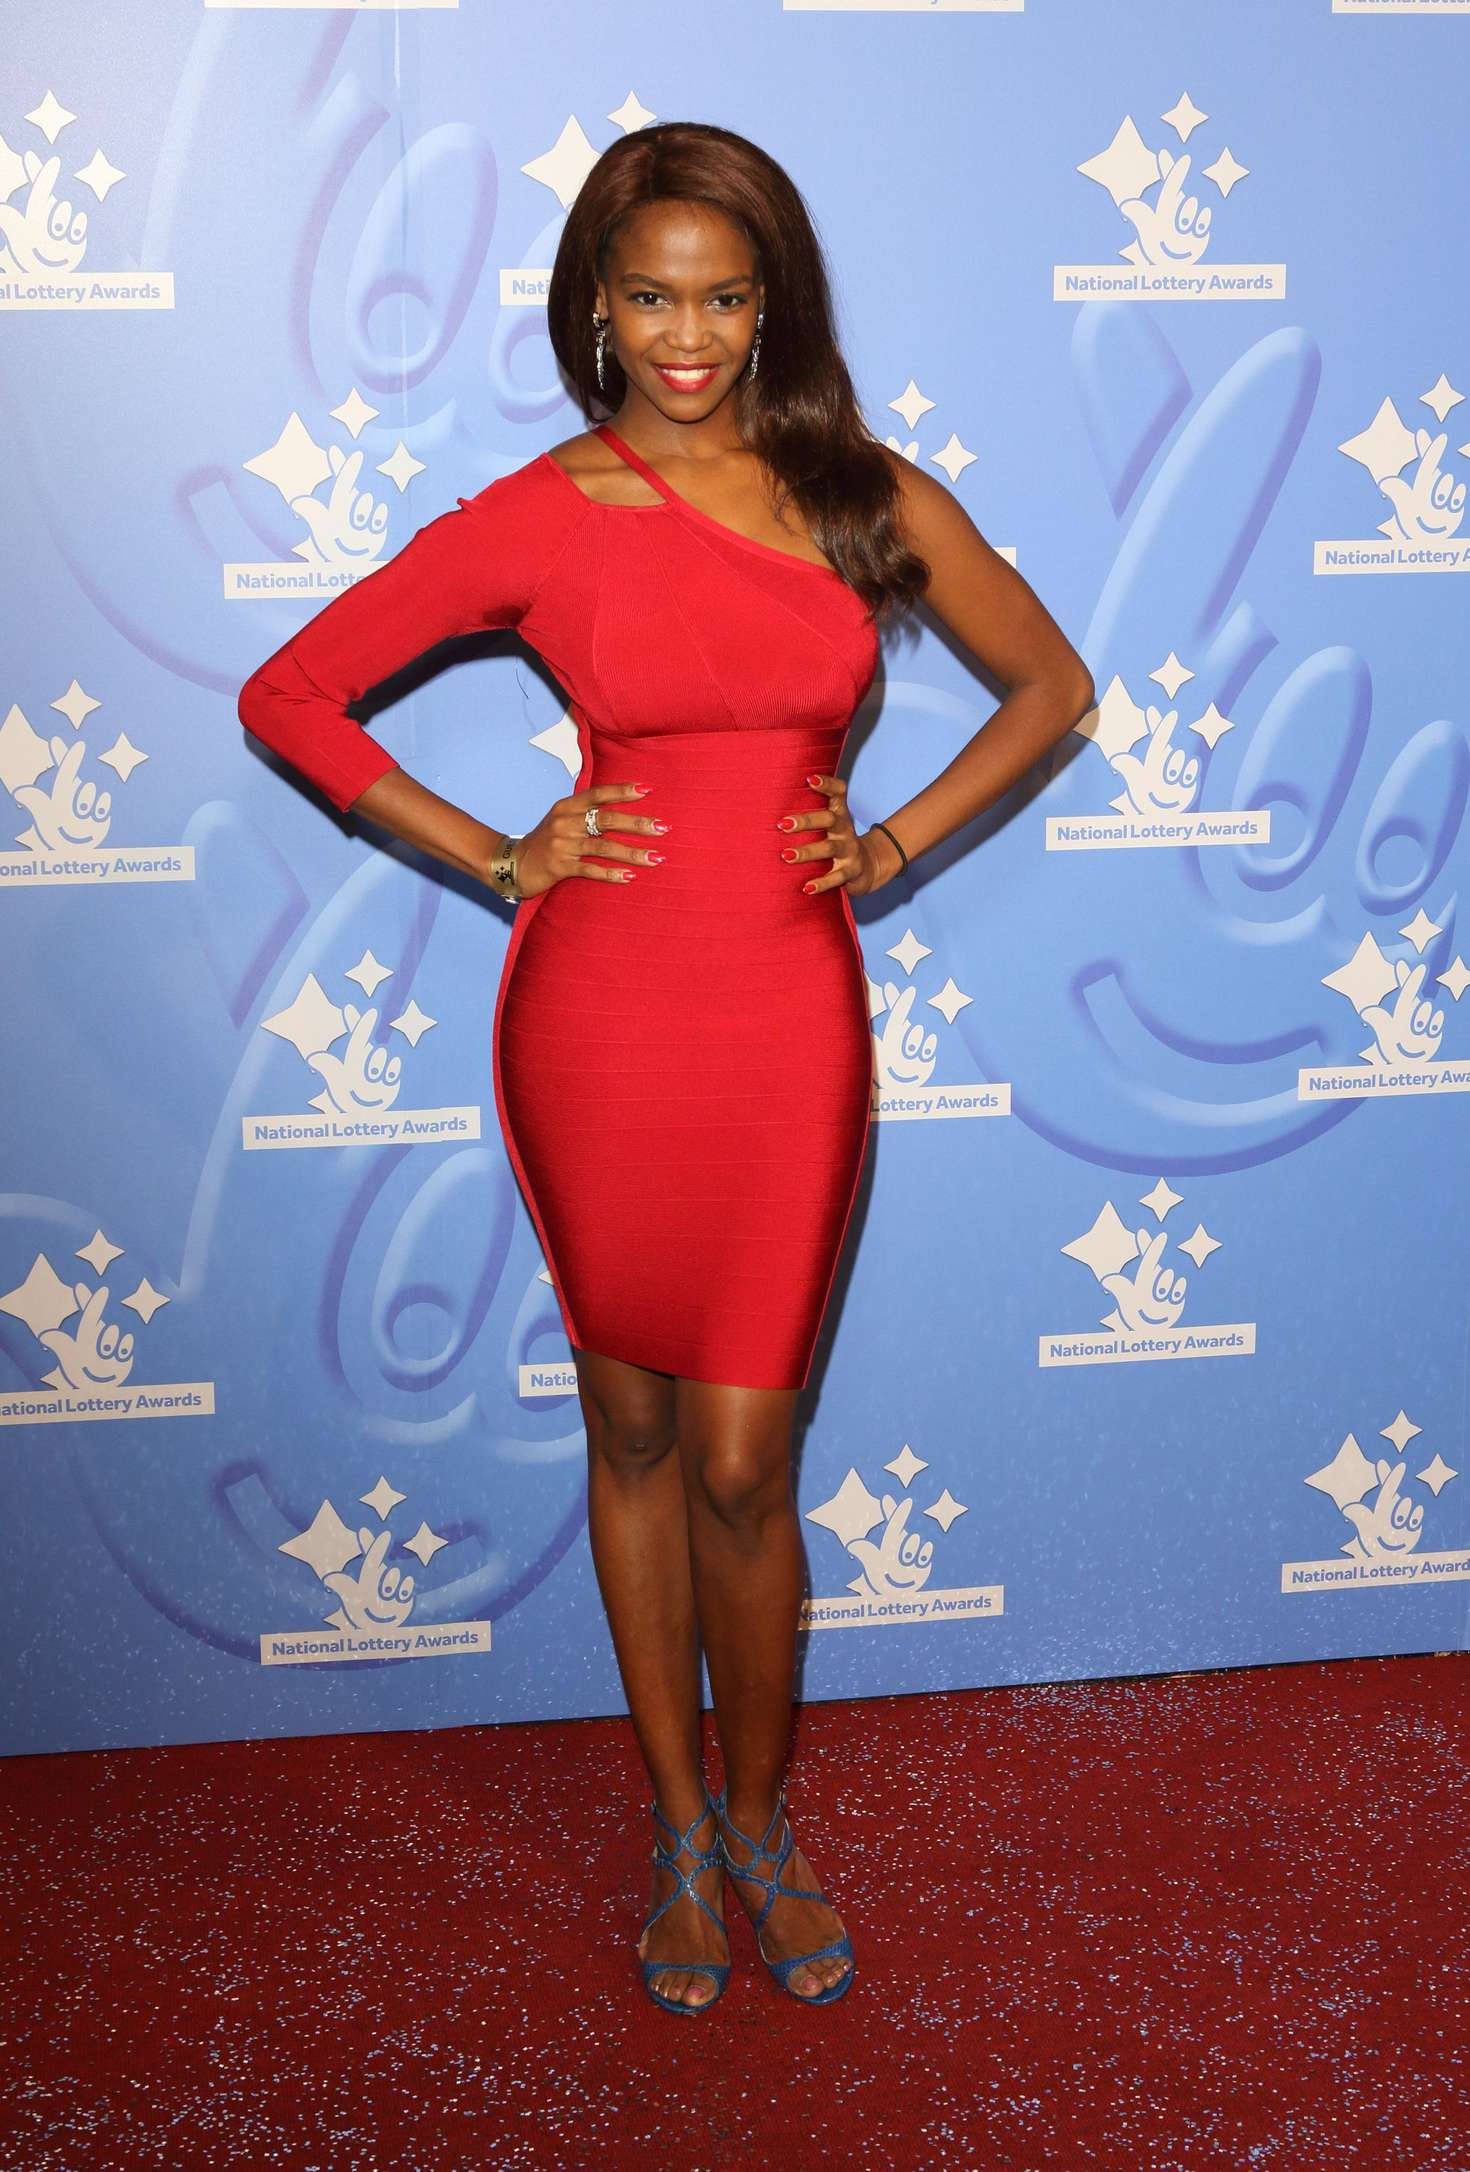 Otlile Mabuse - National Lottery Awards 2016 in London